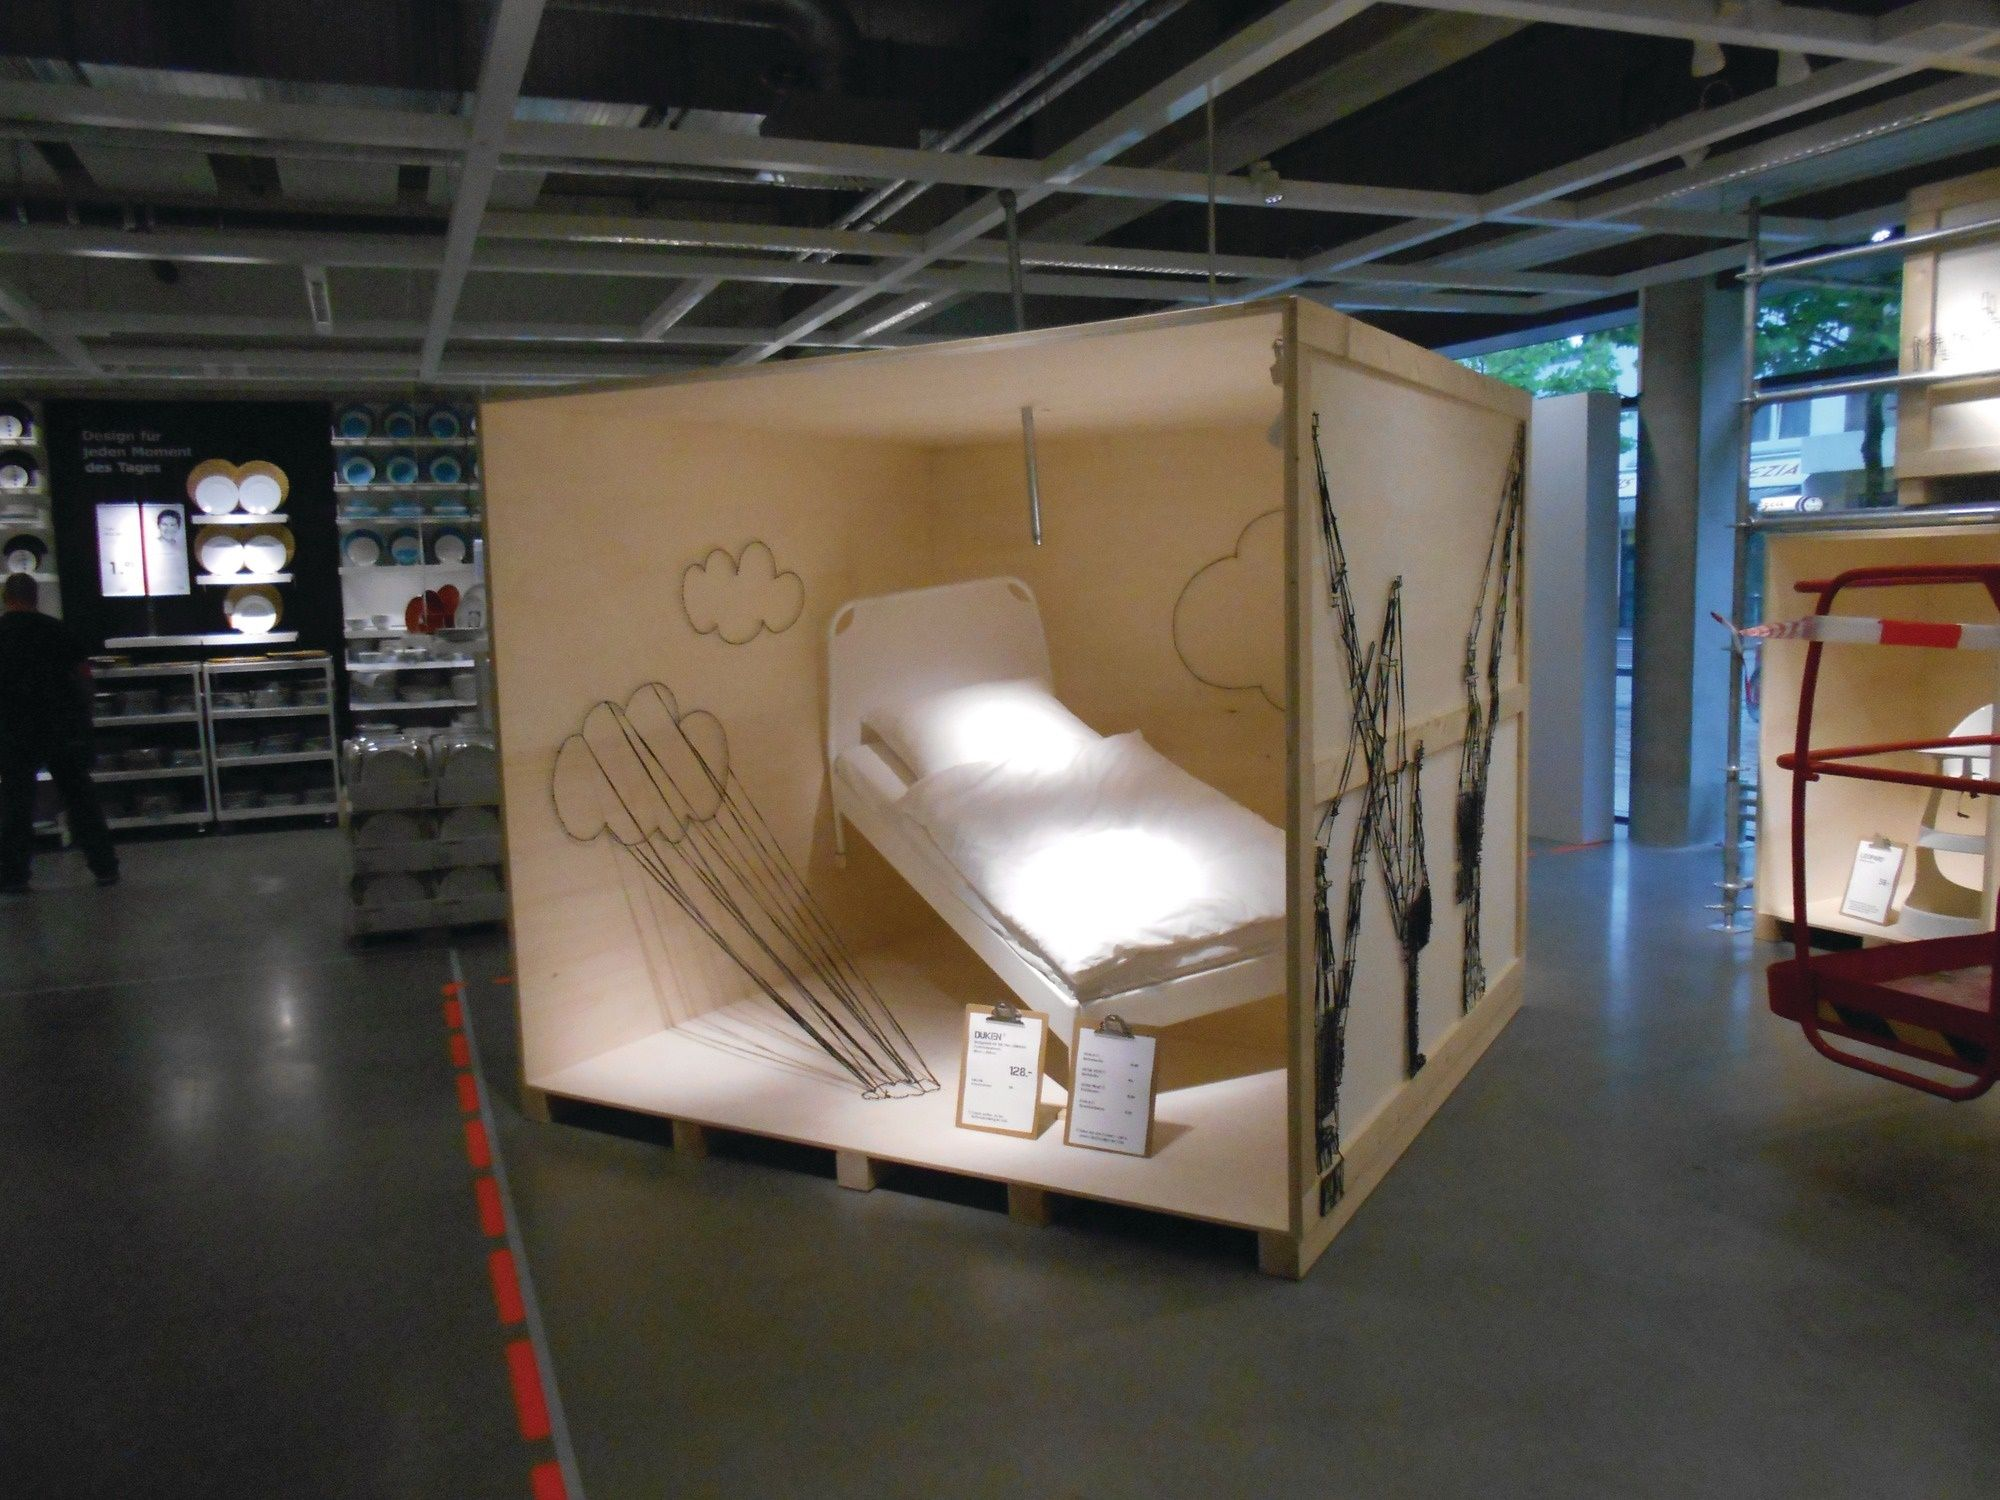 Pictured Is A Display Of The Ikea Citystore In Hamburg